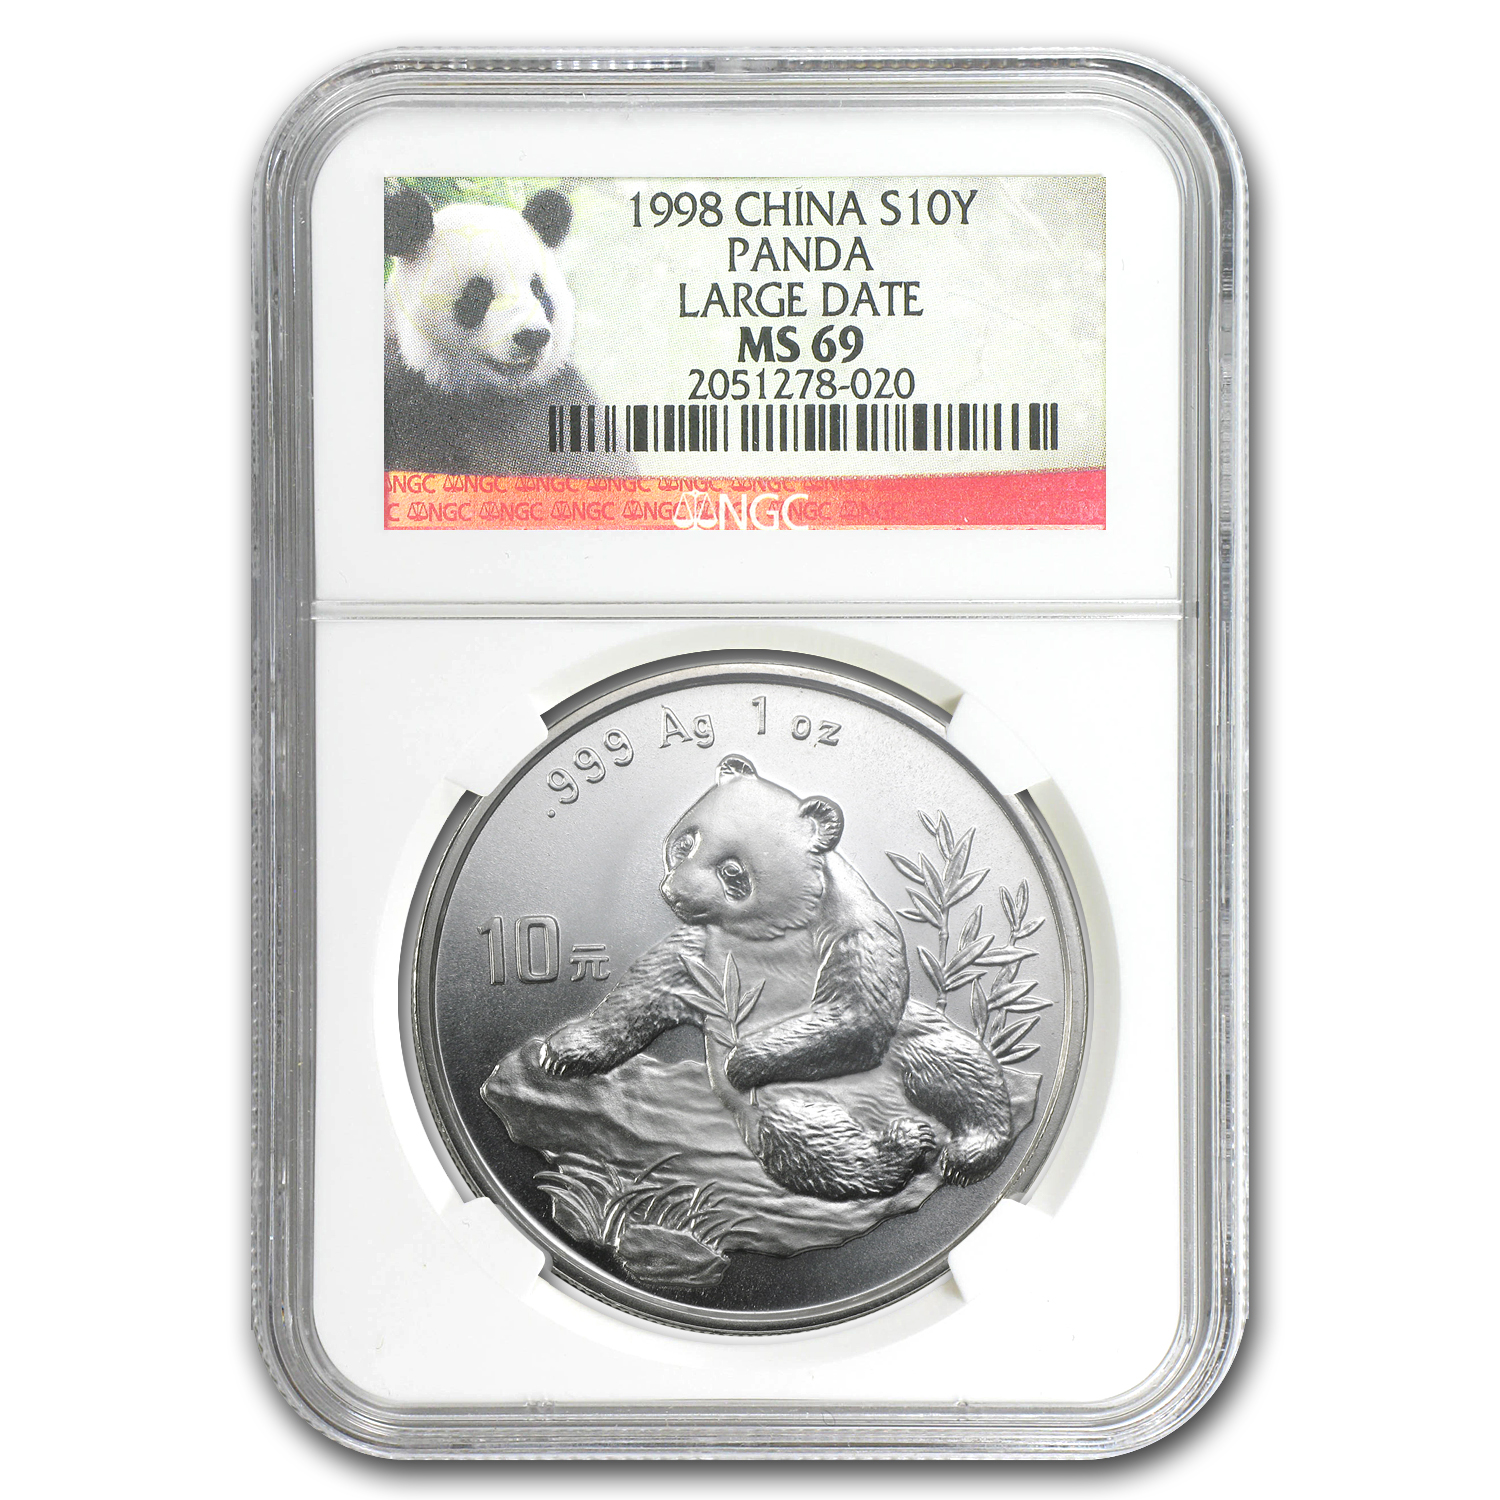 1998 China 1 oz Silver Panda MS-69 NGC (Large Date)